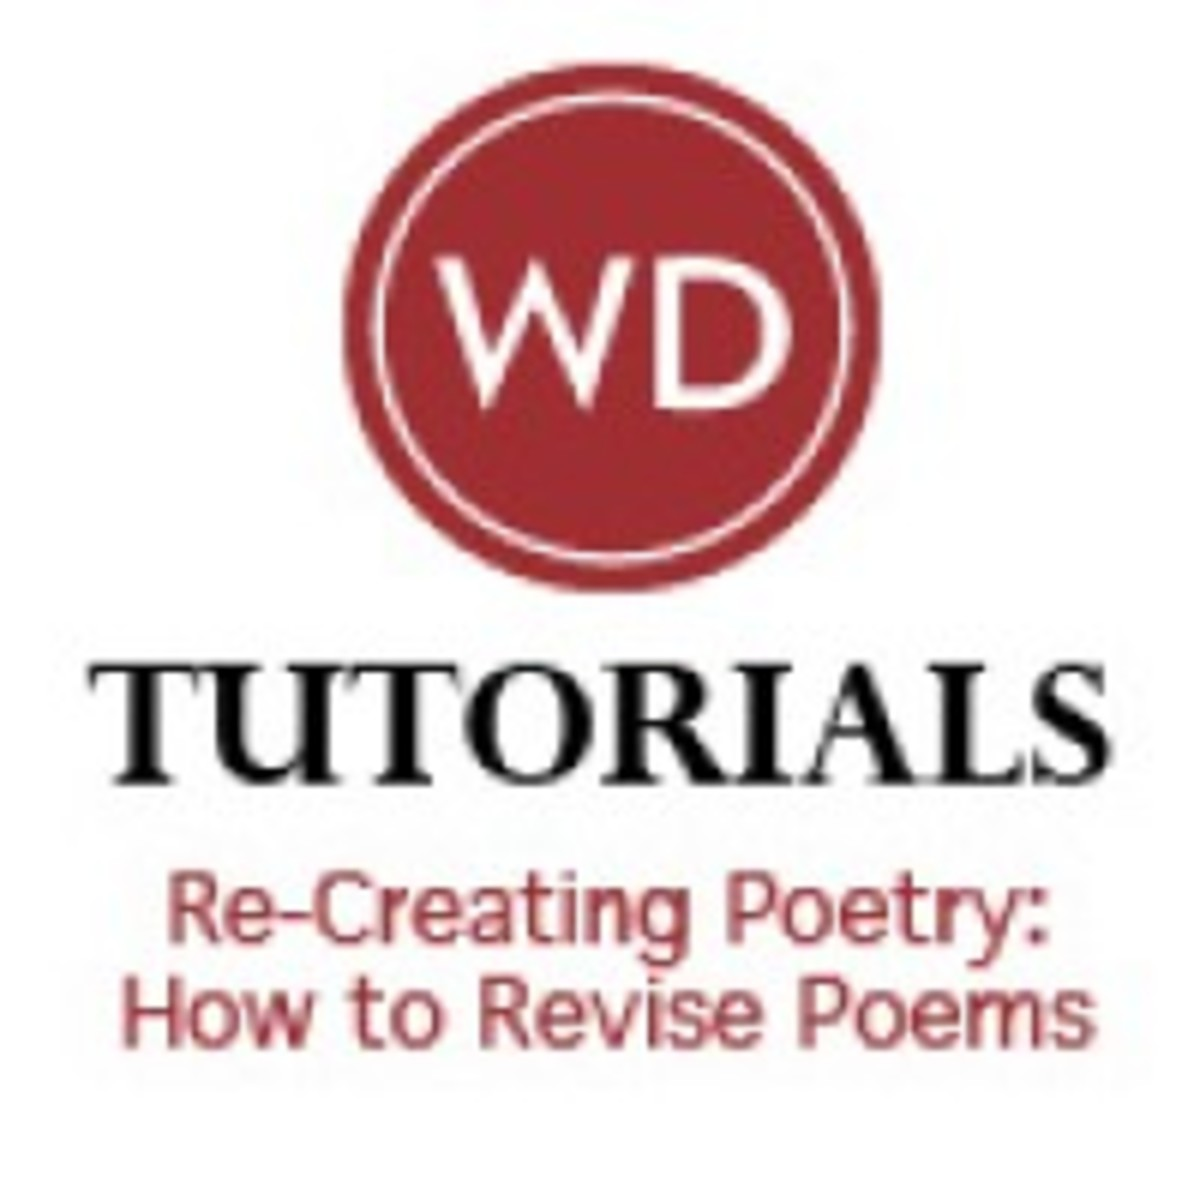 Recreating_Poetry_Revise_Poems